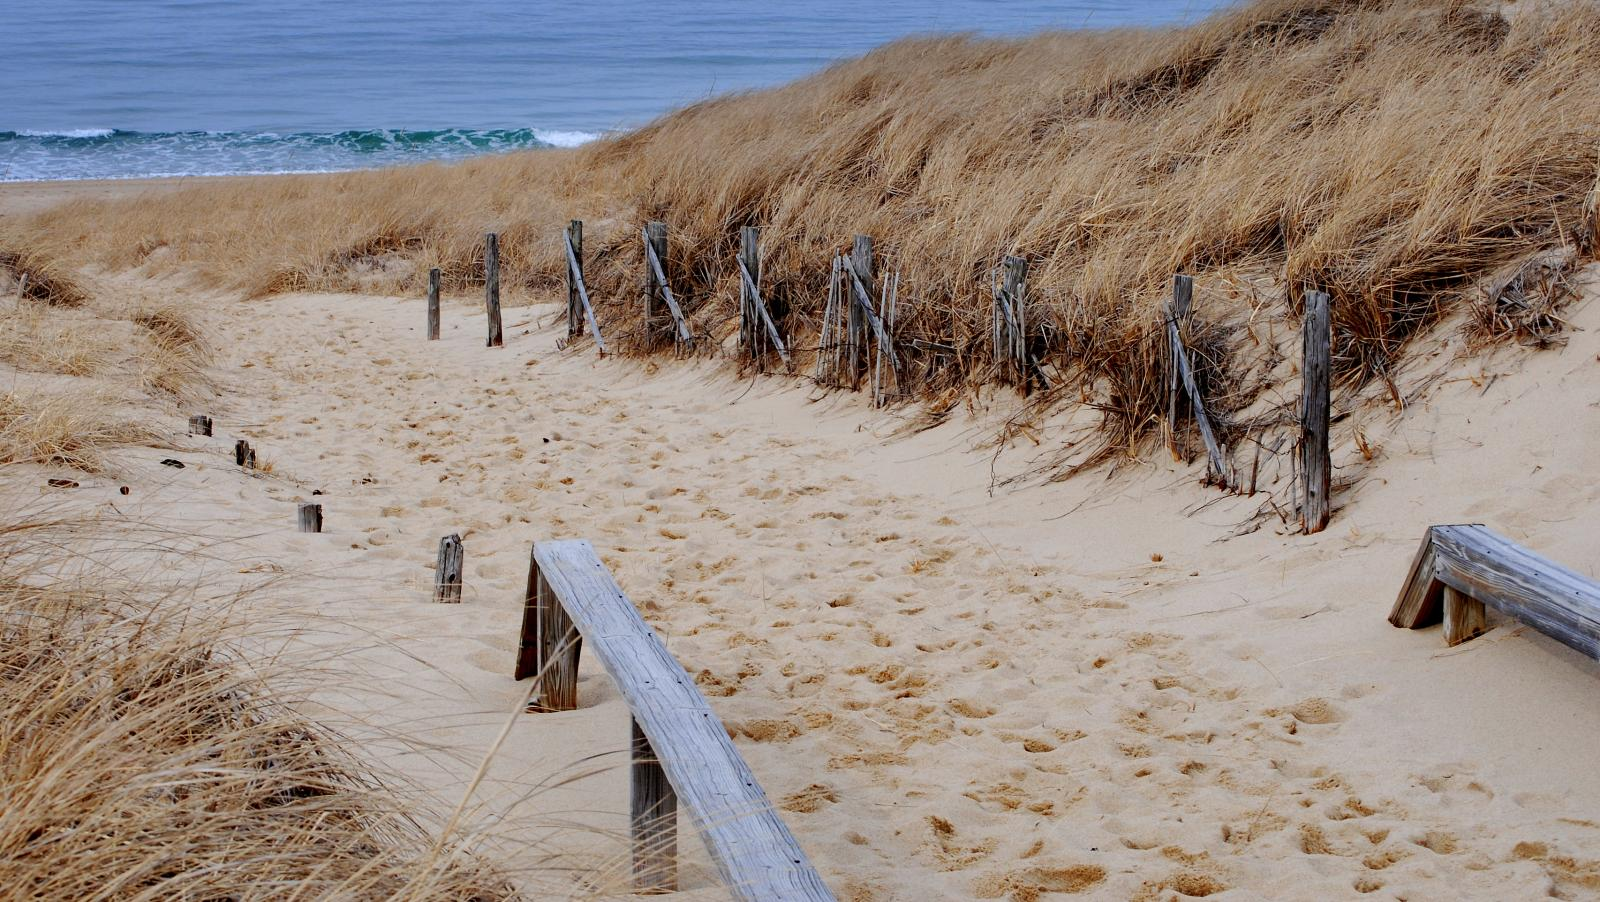 The Beach at Cape Cod